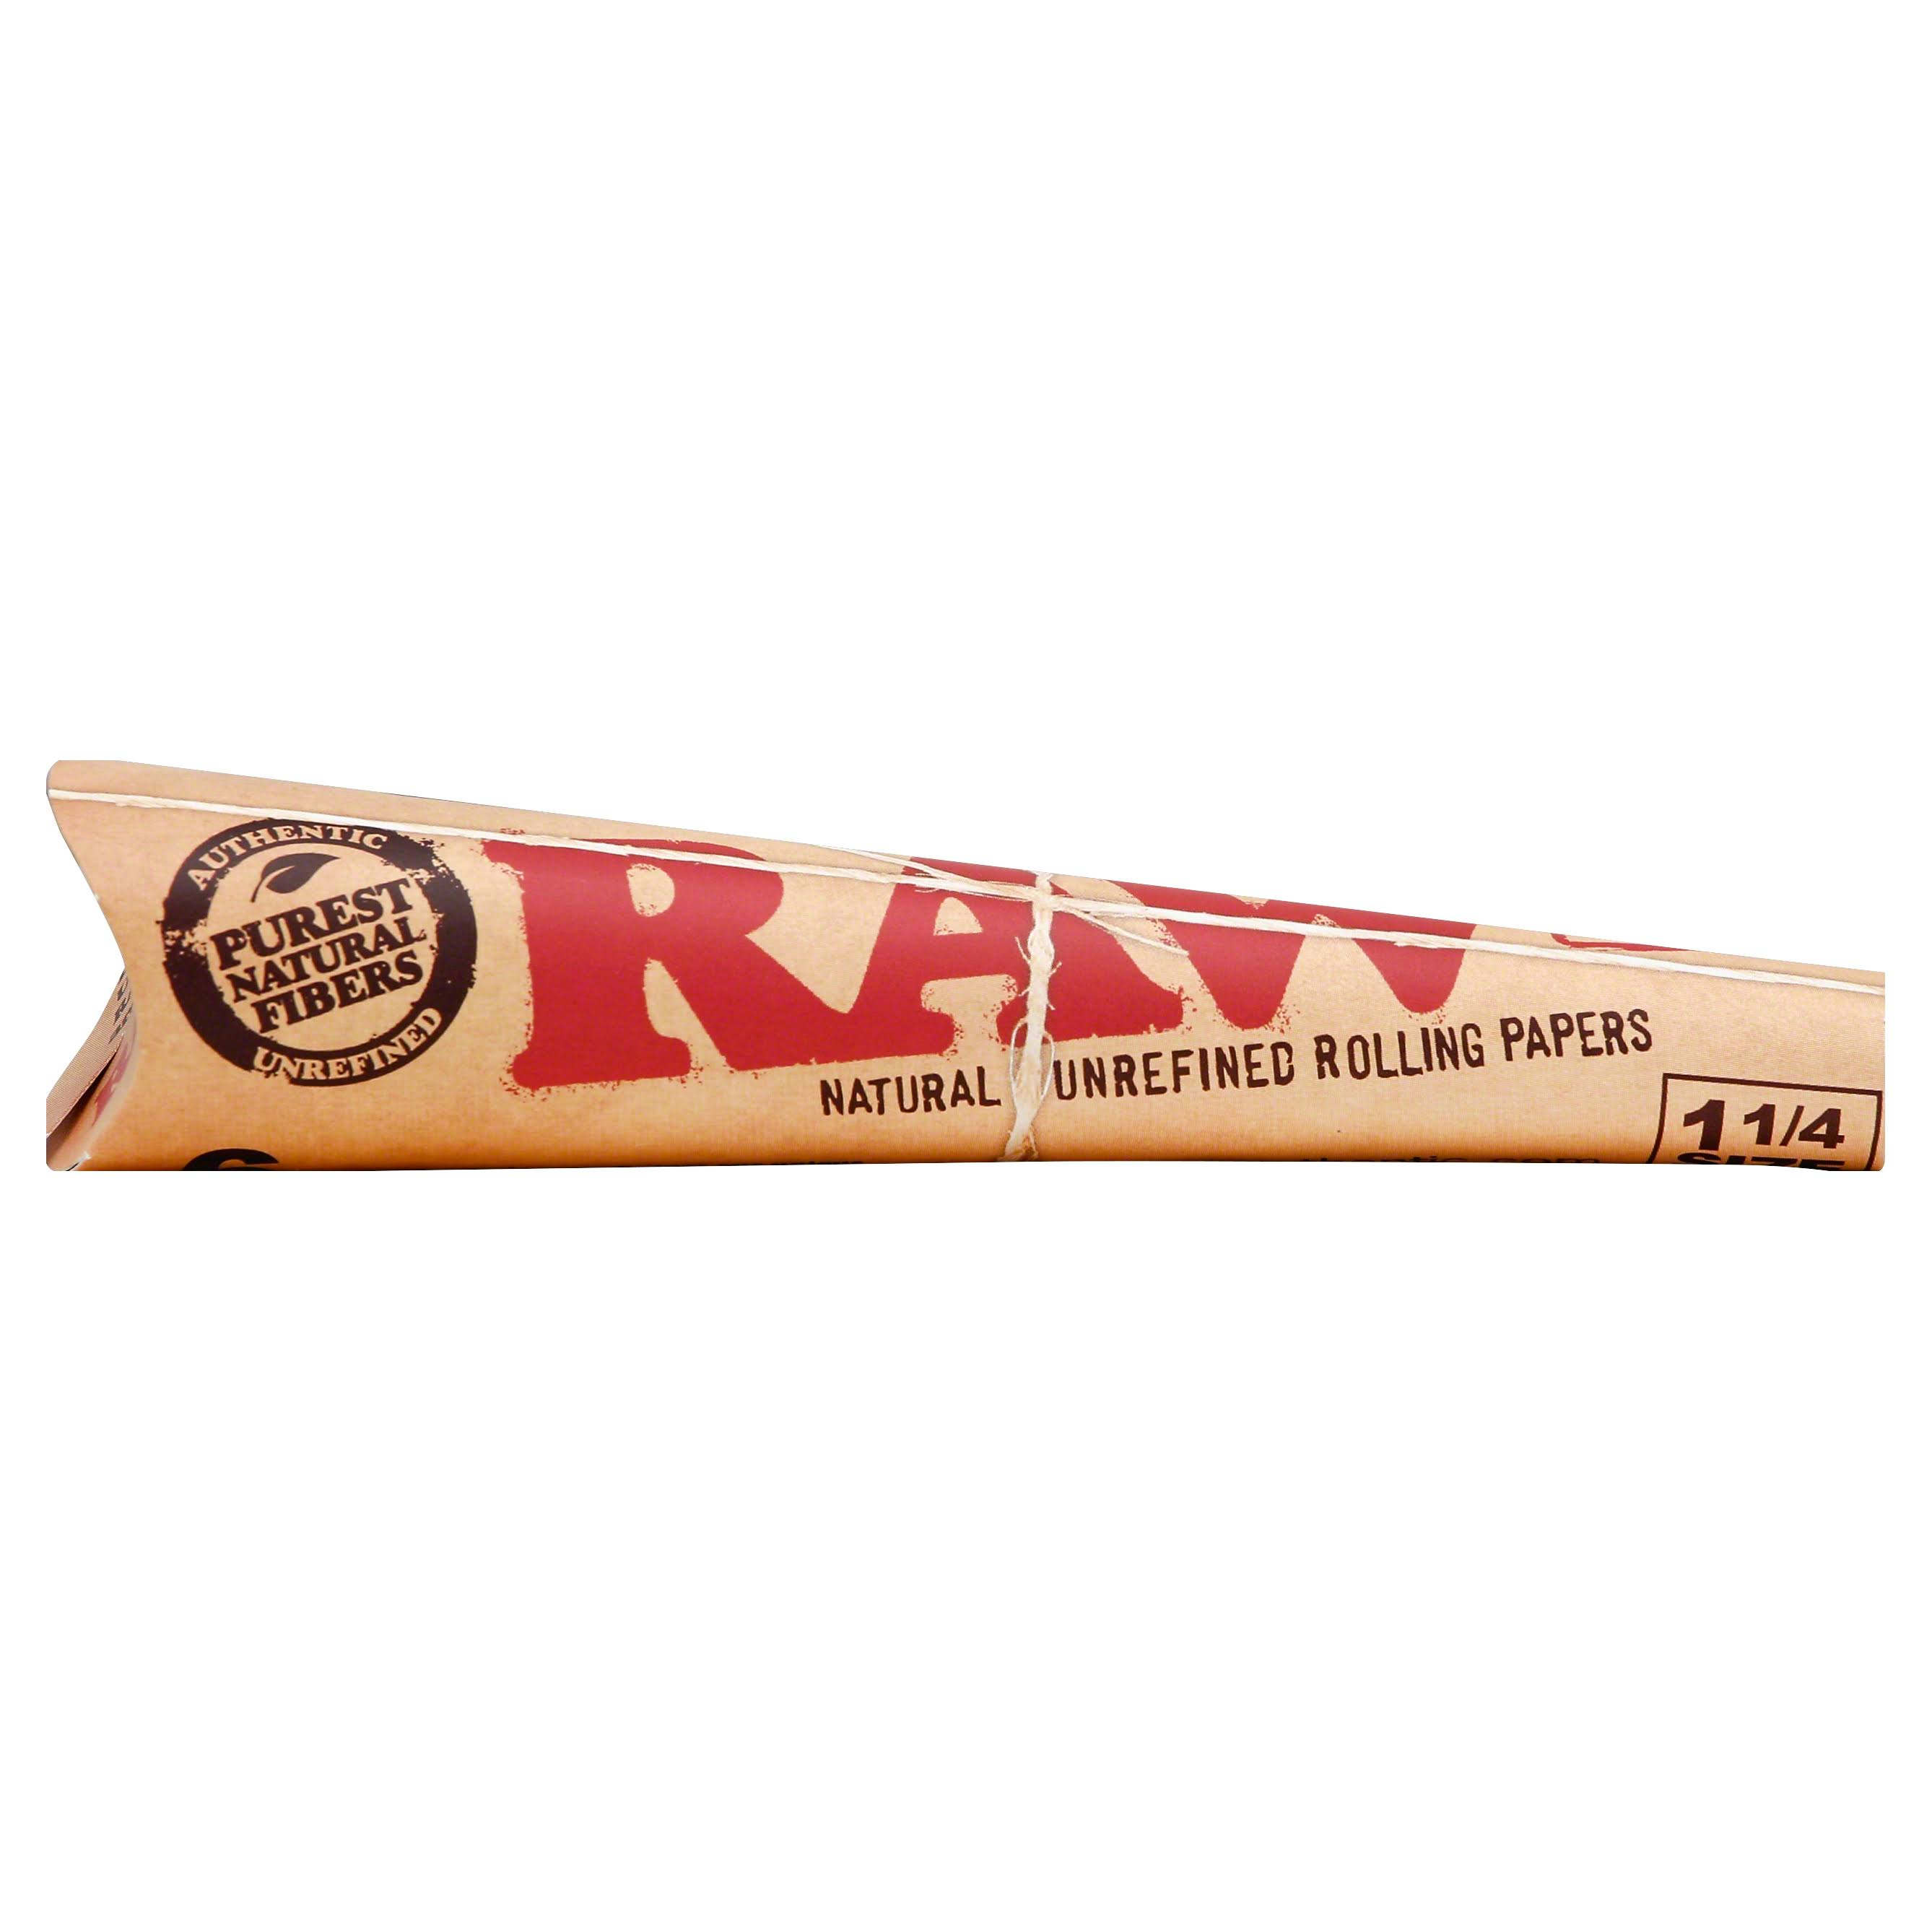 Raw Rolling Papers, Classic, Cone, 1-1/4 Size, 6 Pack - 6 pack